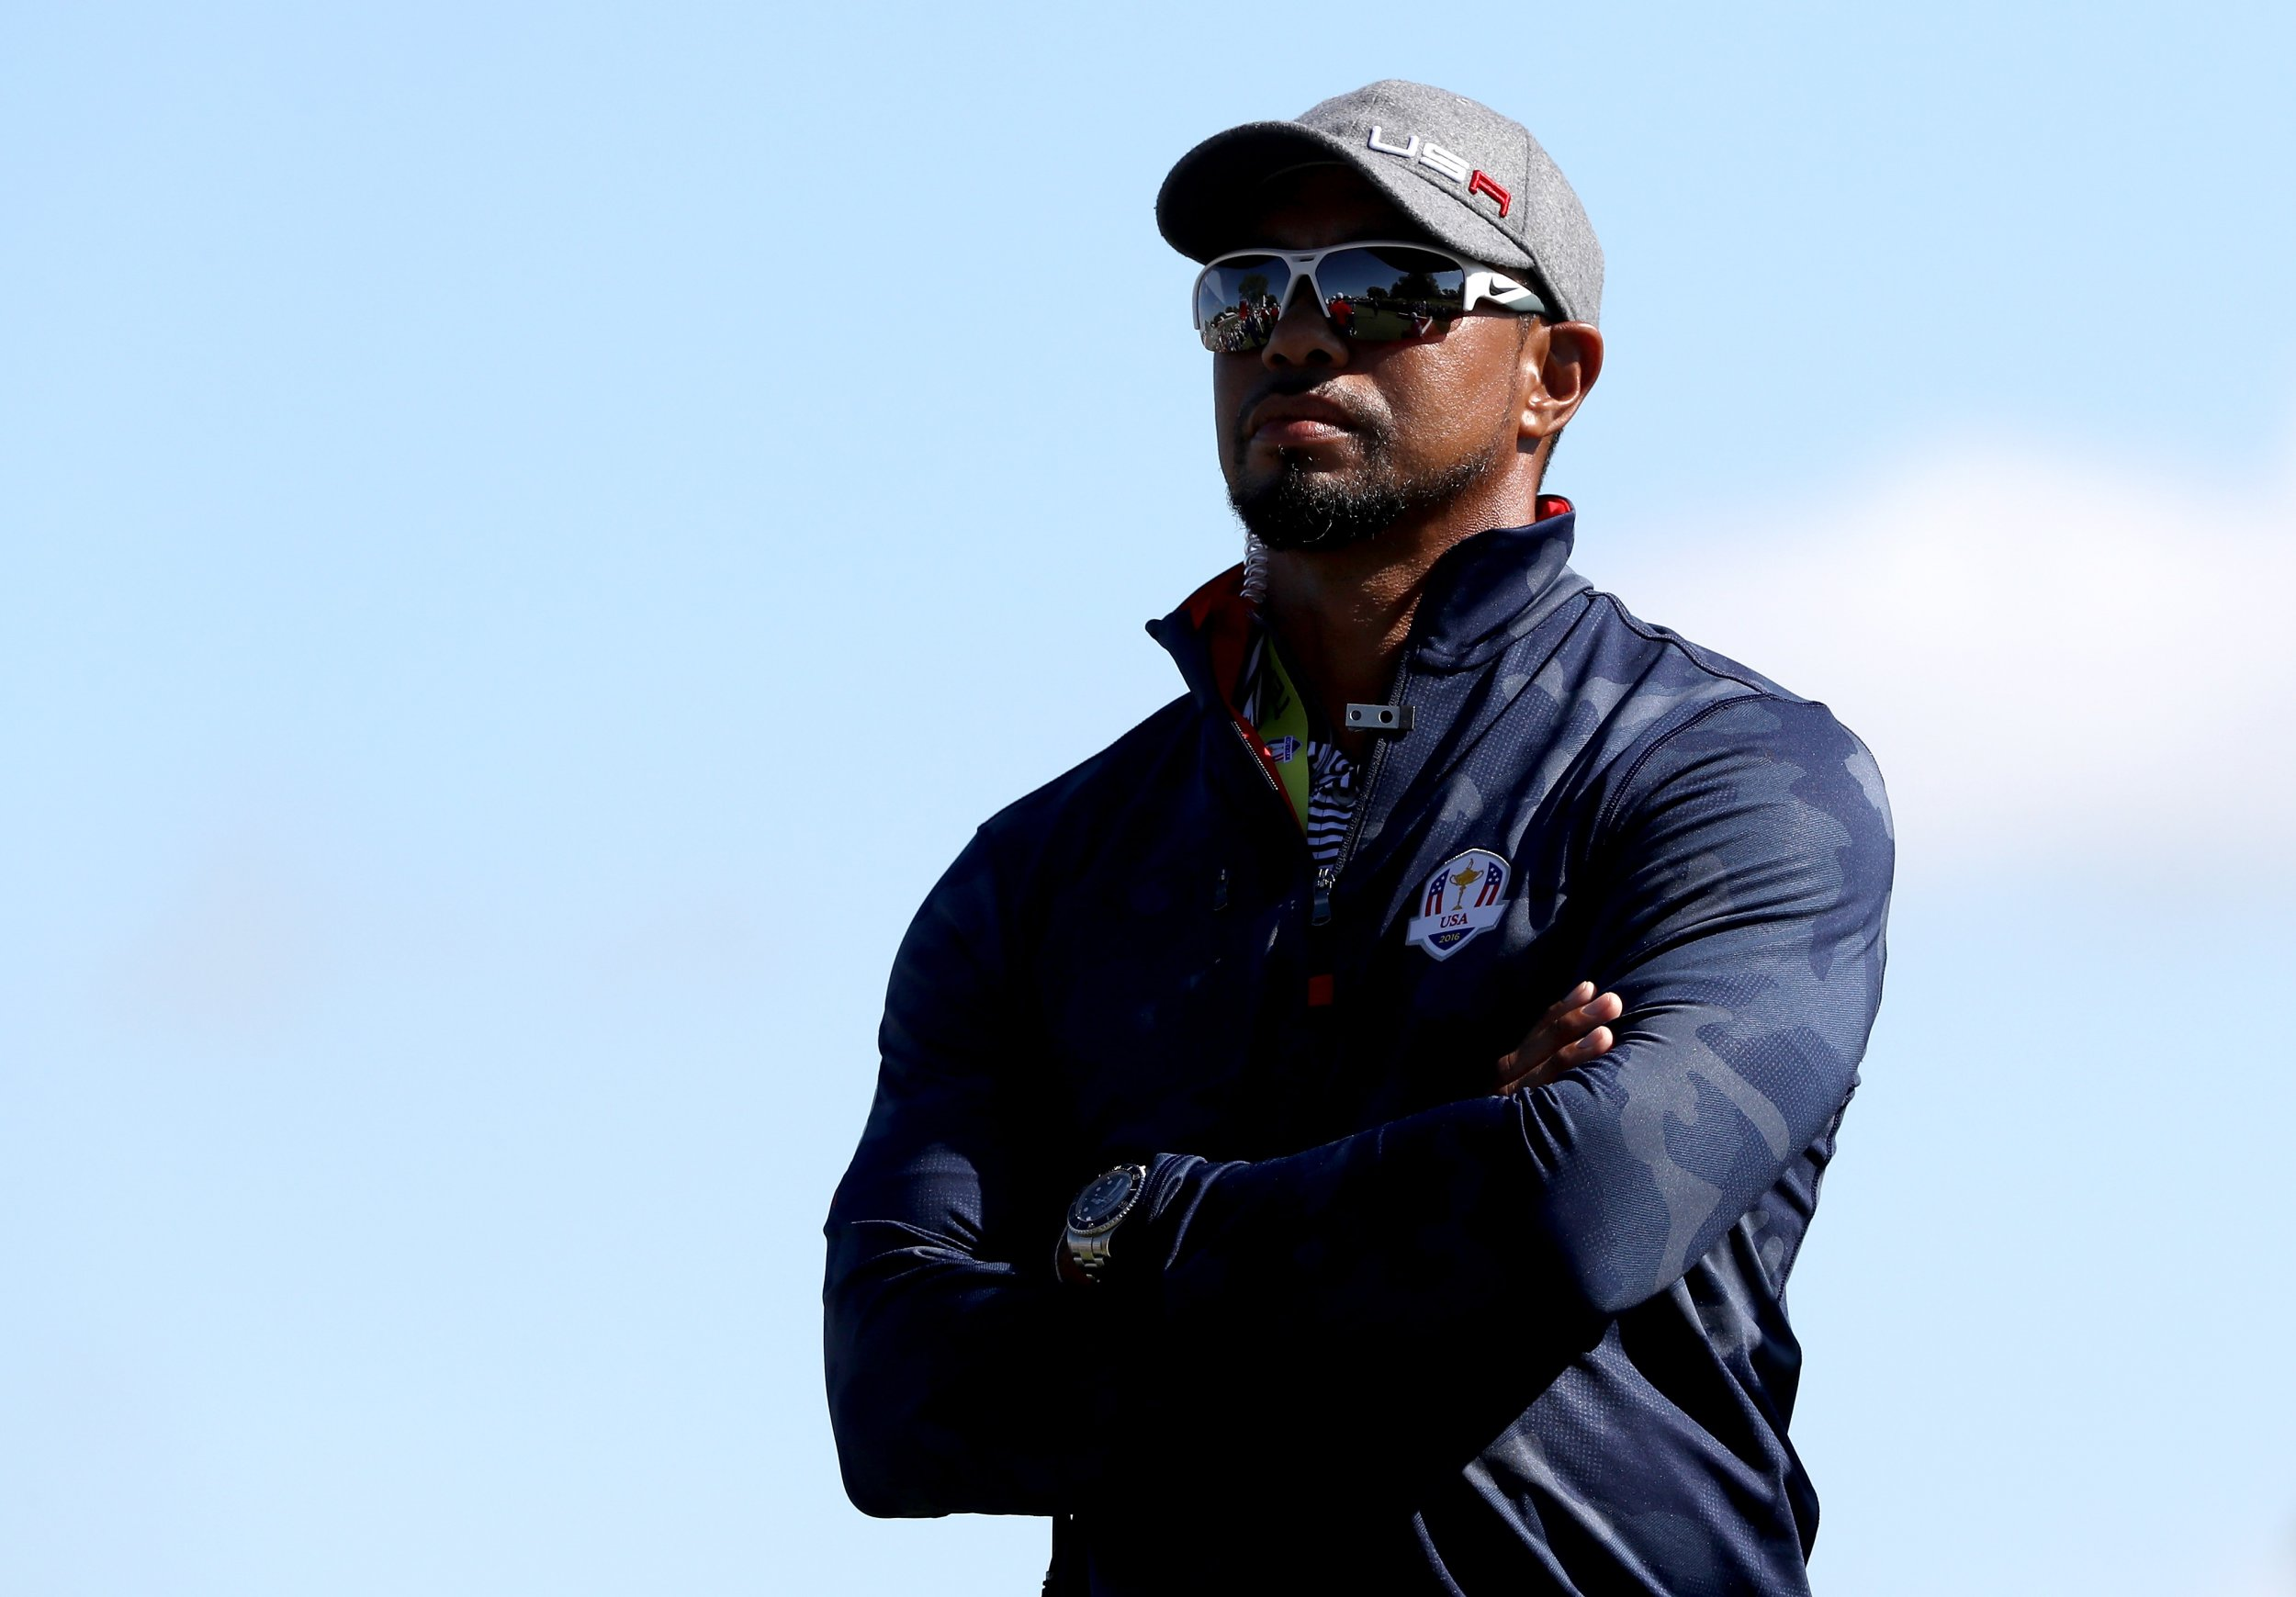 Ryder Cup vice-captain Tiger Woods